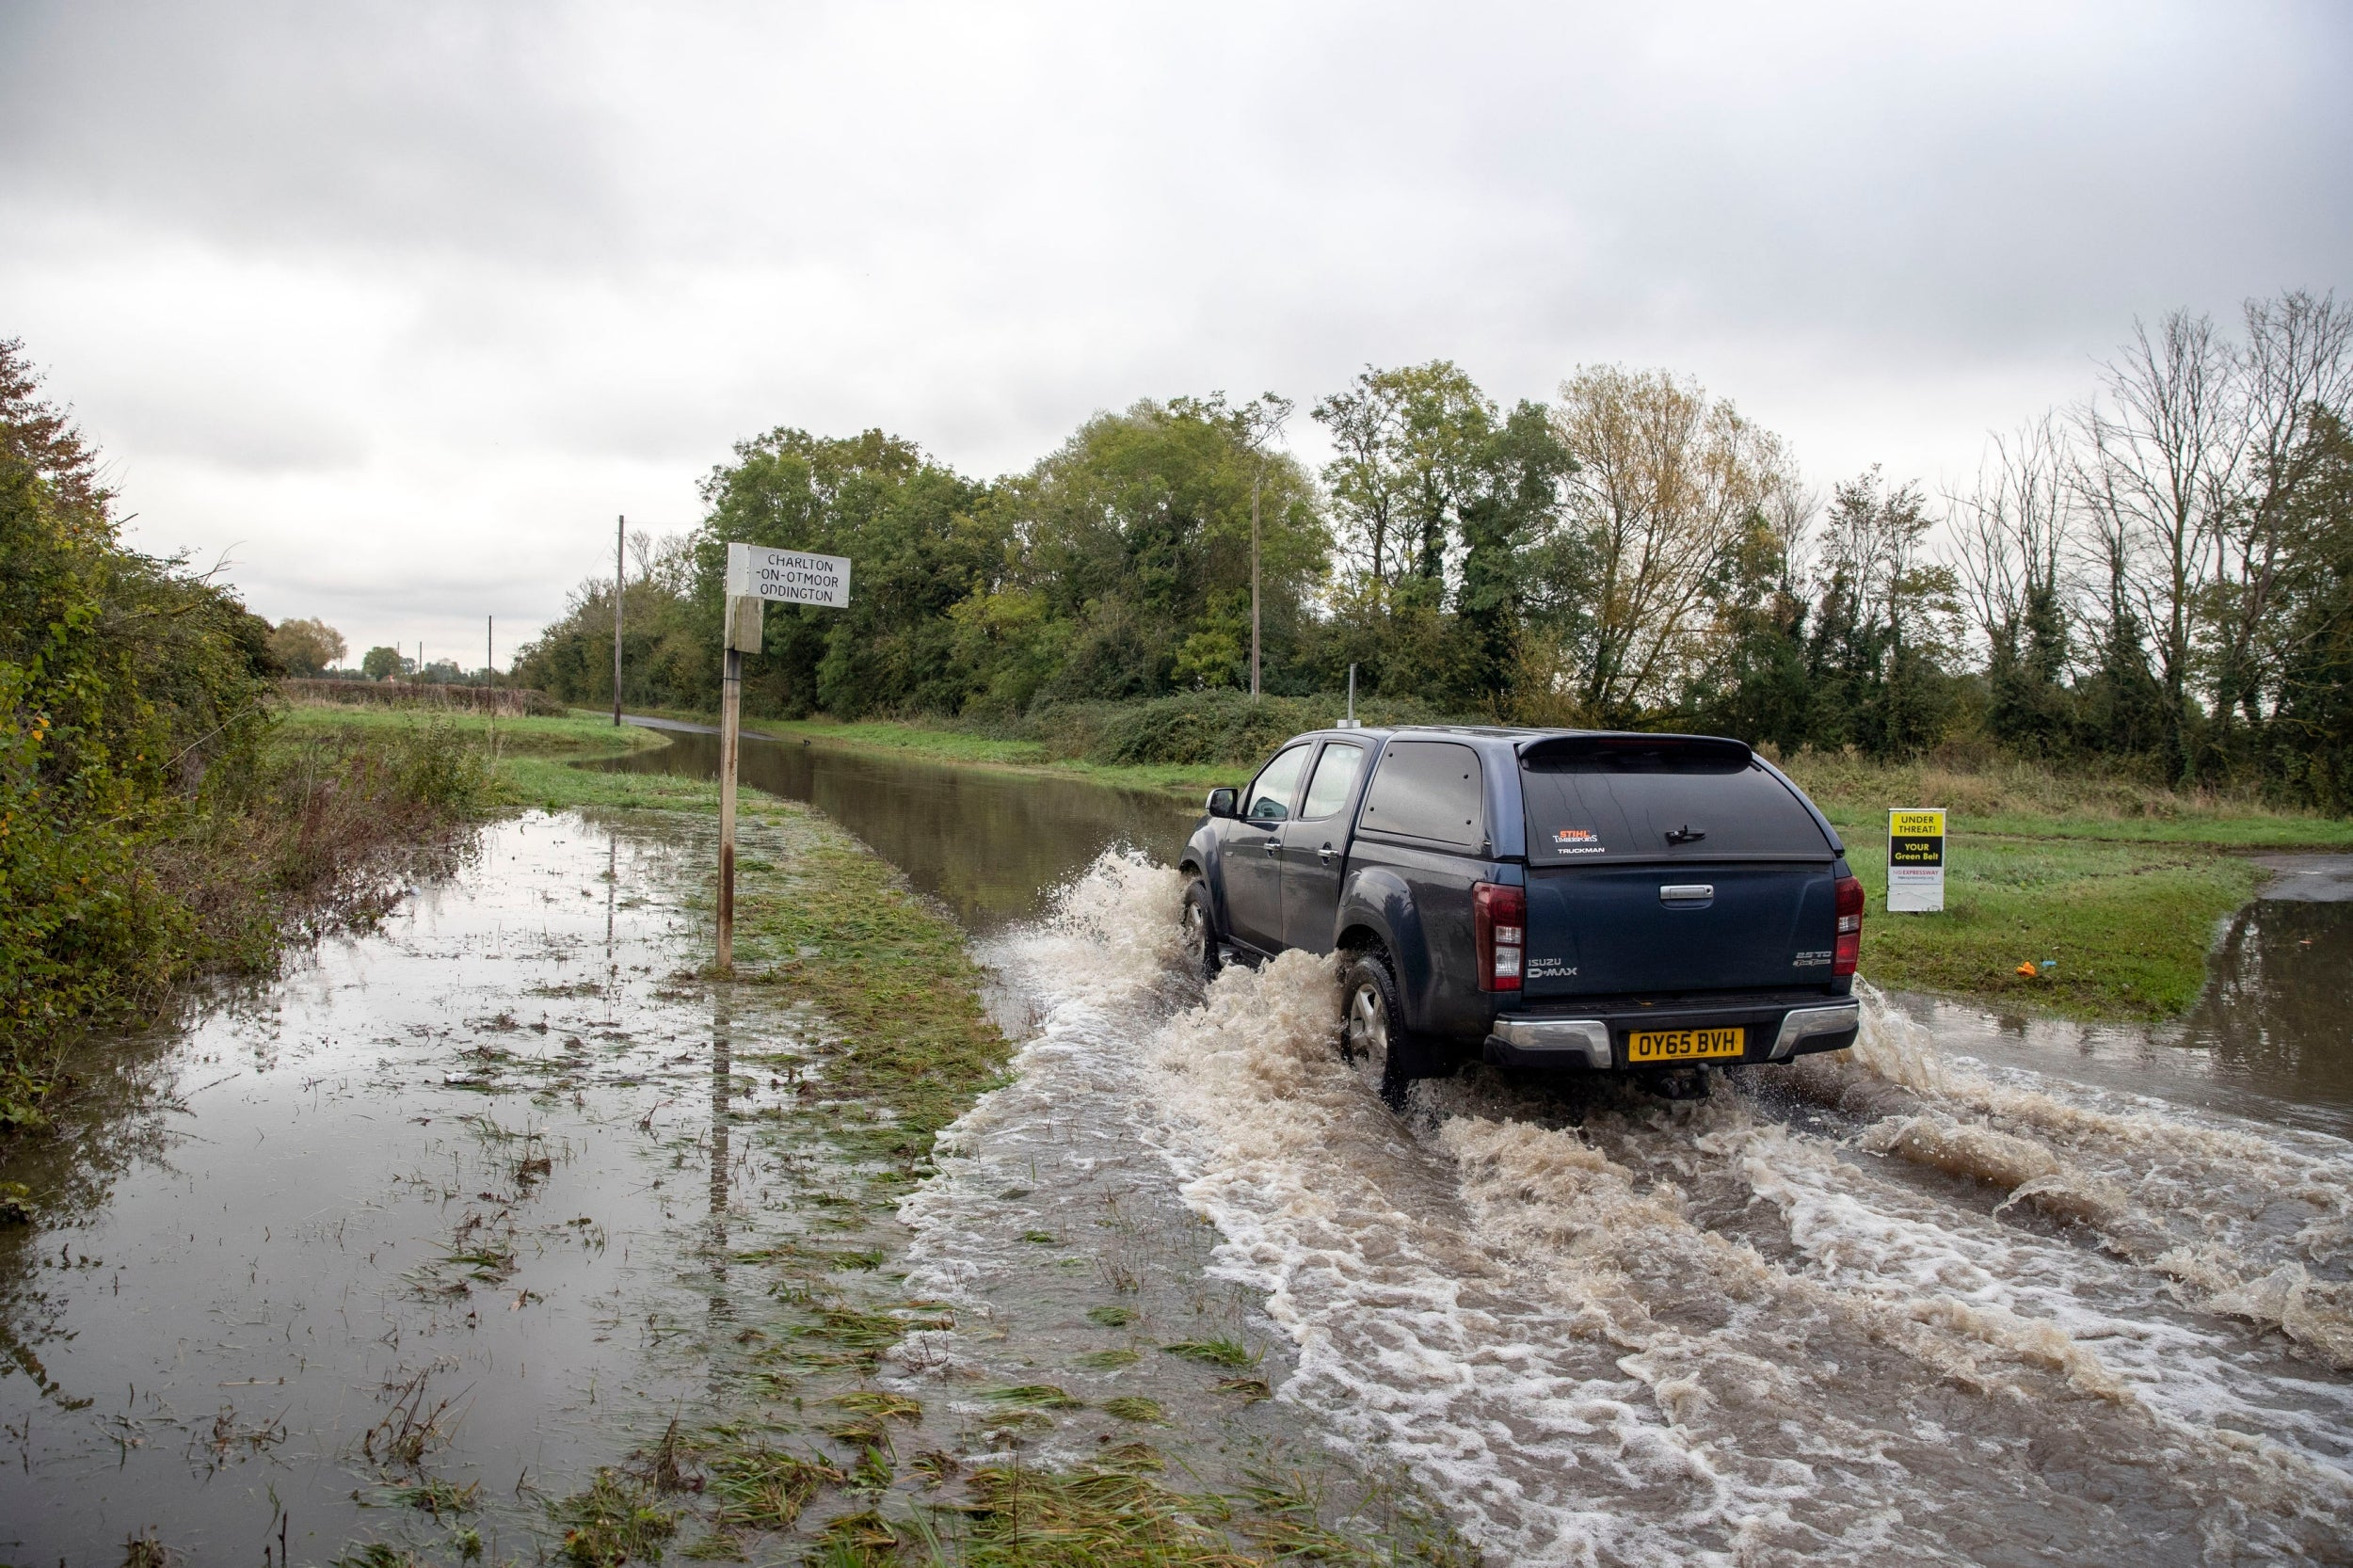 UK weather forecast: Flood alerts issued in Scotland after 24 hours of heavy rain